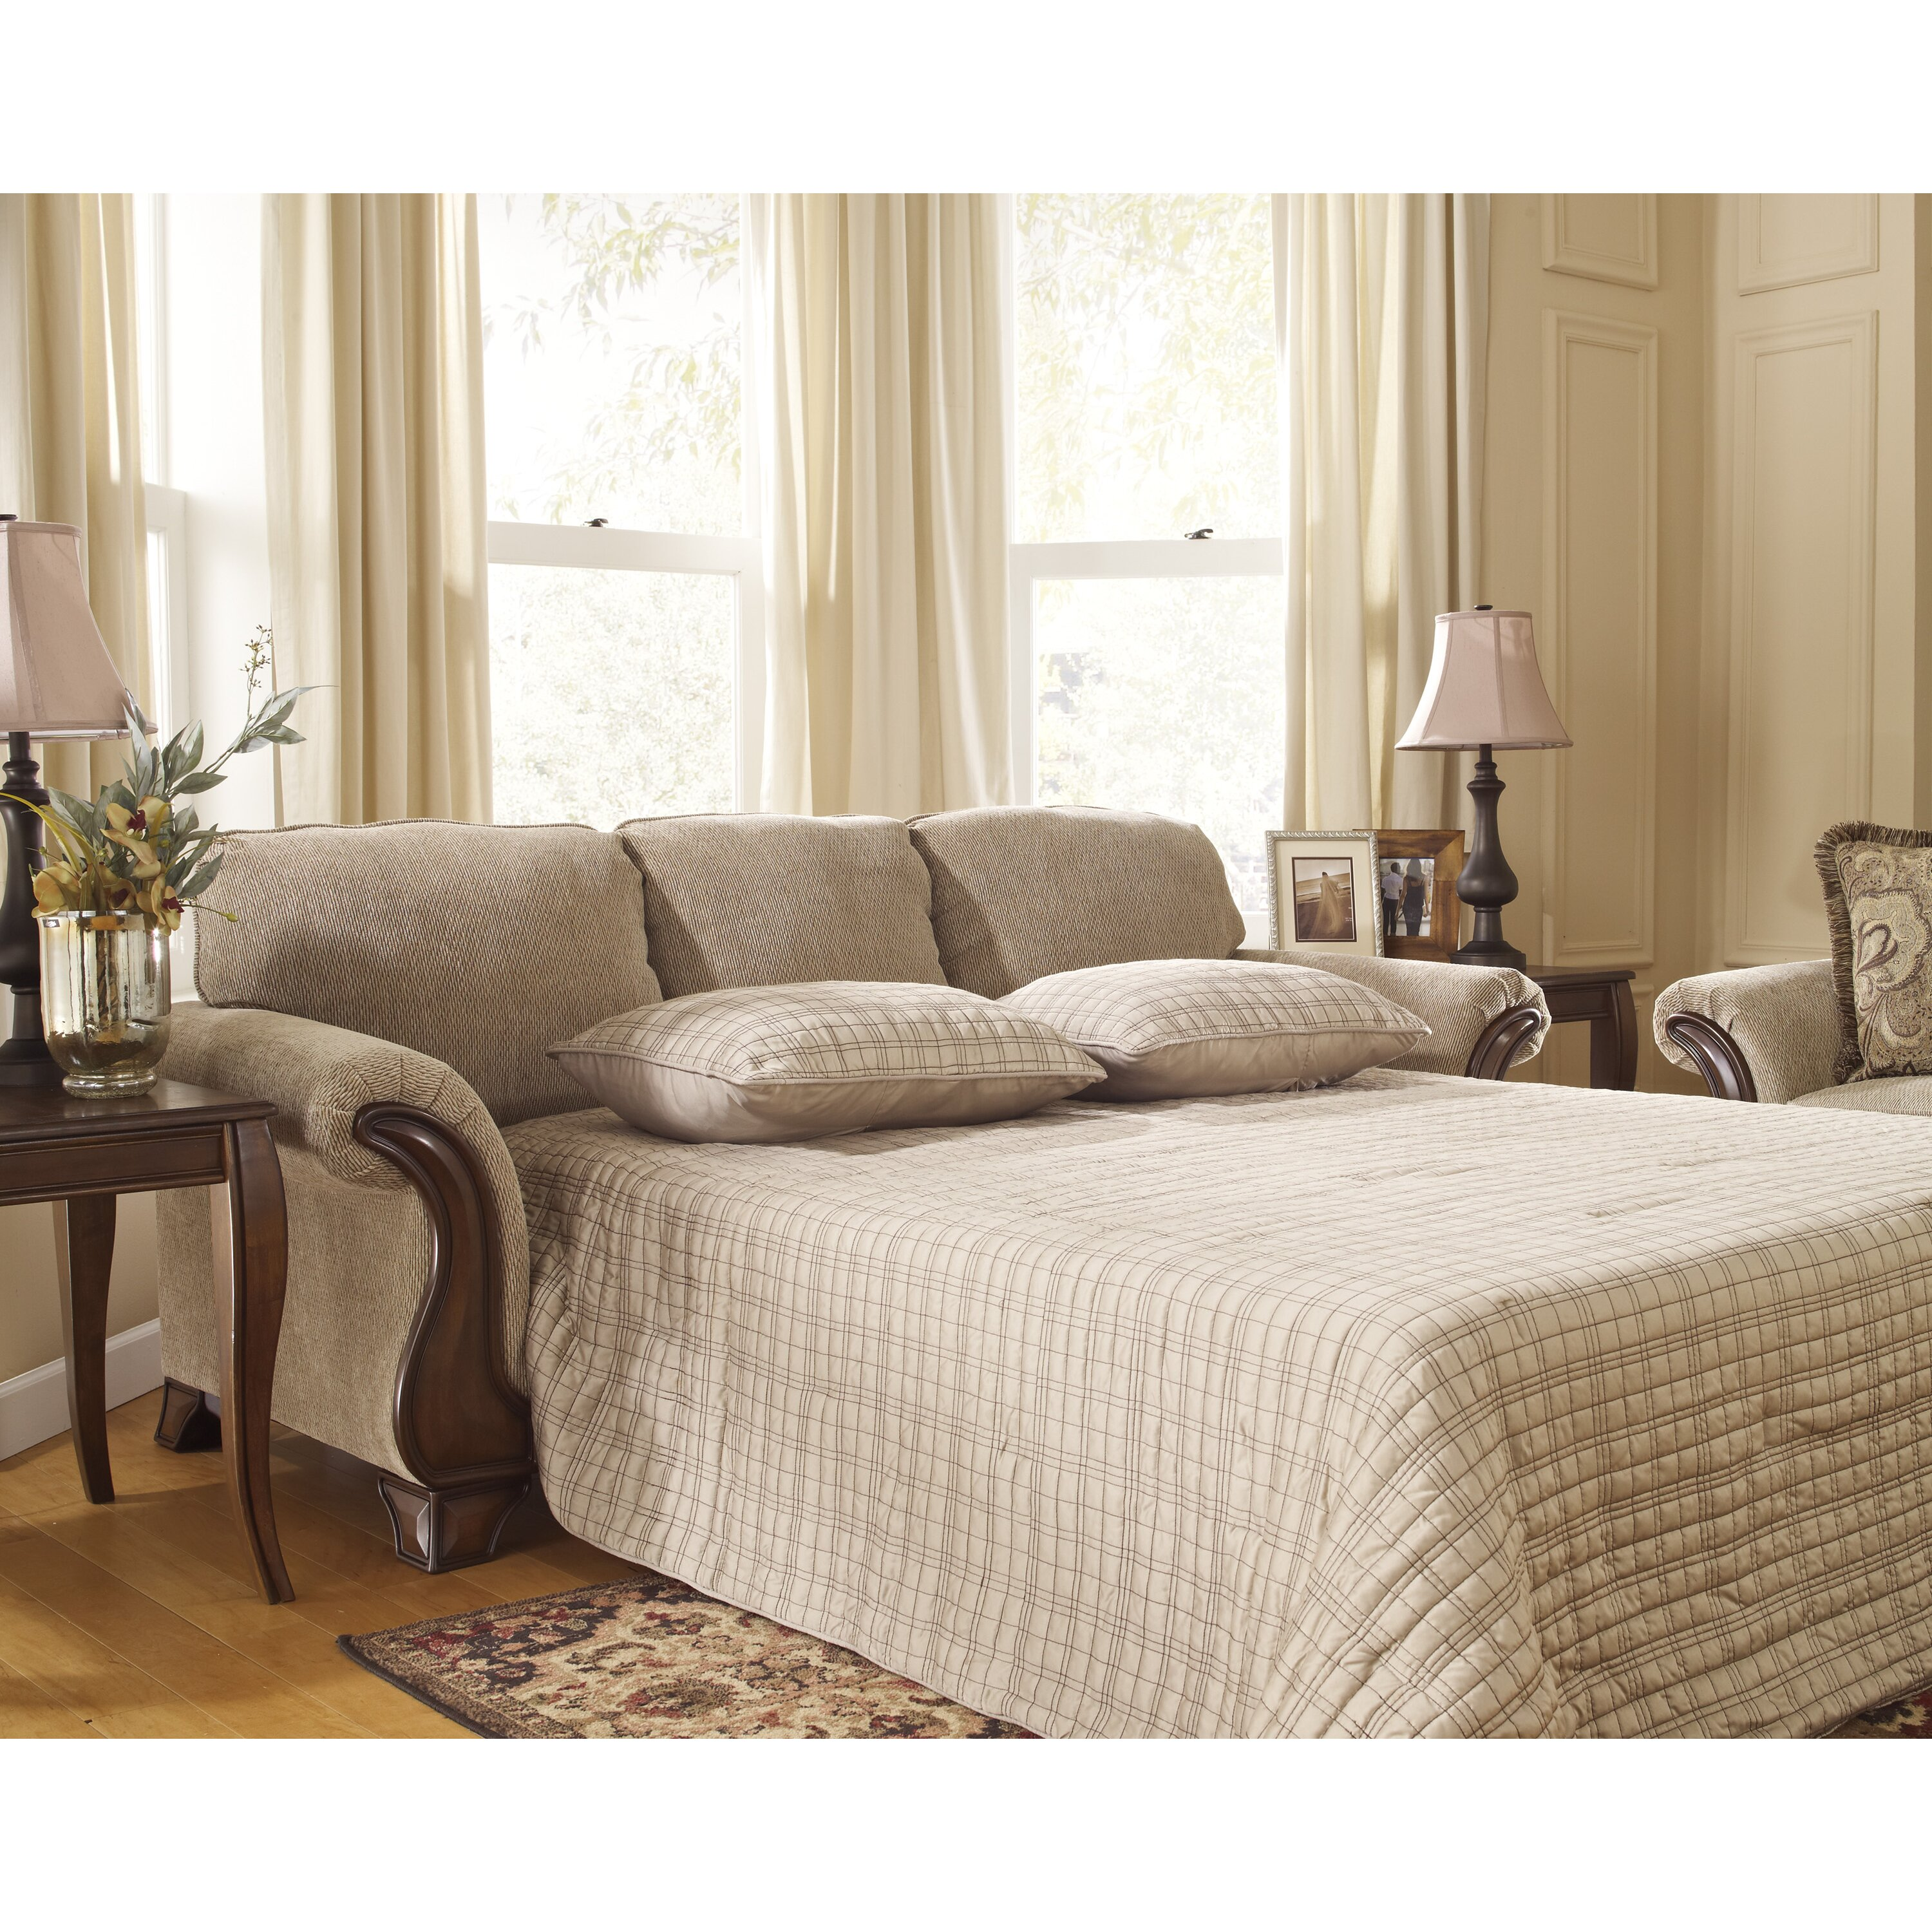 Ashley Furniture Queen Size Day Beds